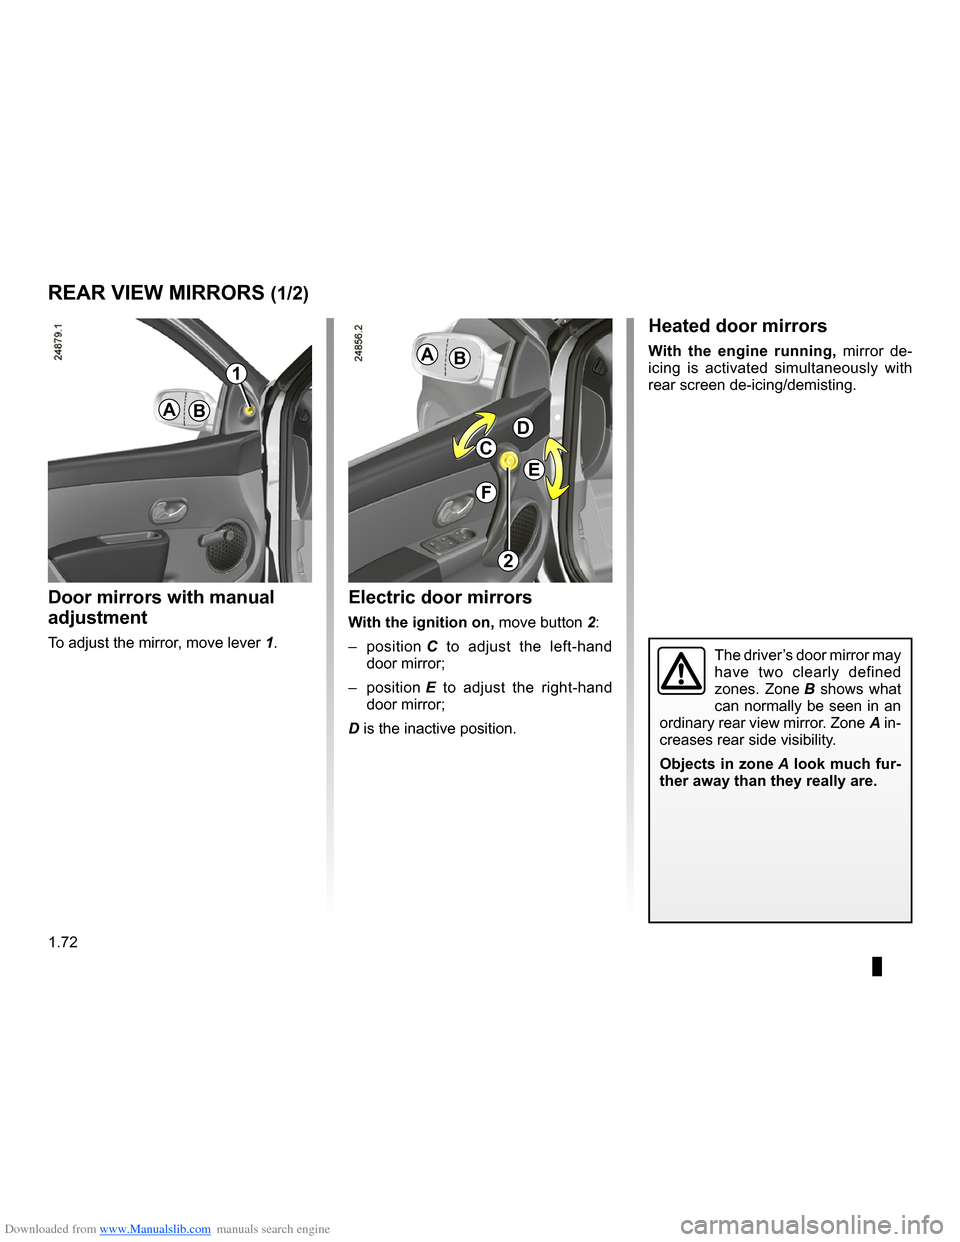 RENAULT CLIO 2009 X85 / 3.G Owners Manual, Page 78